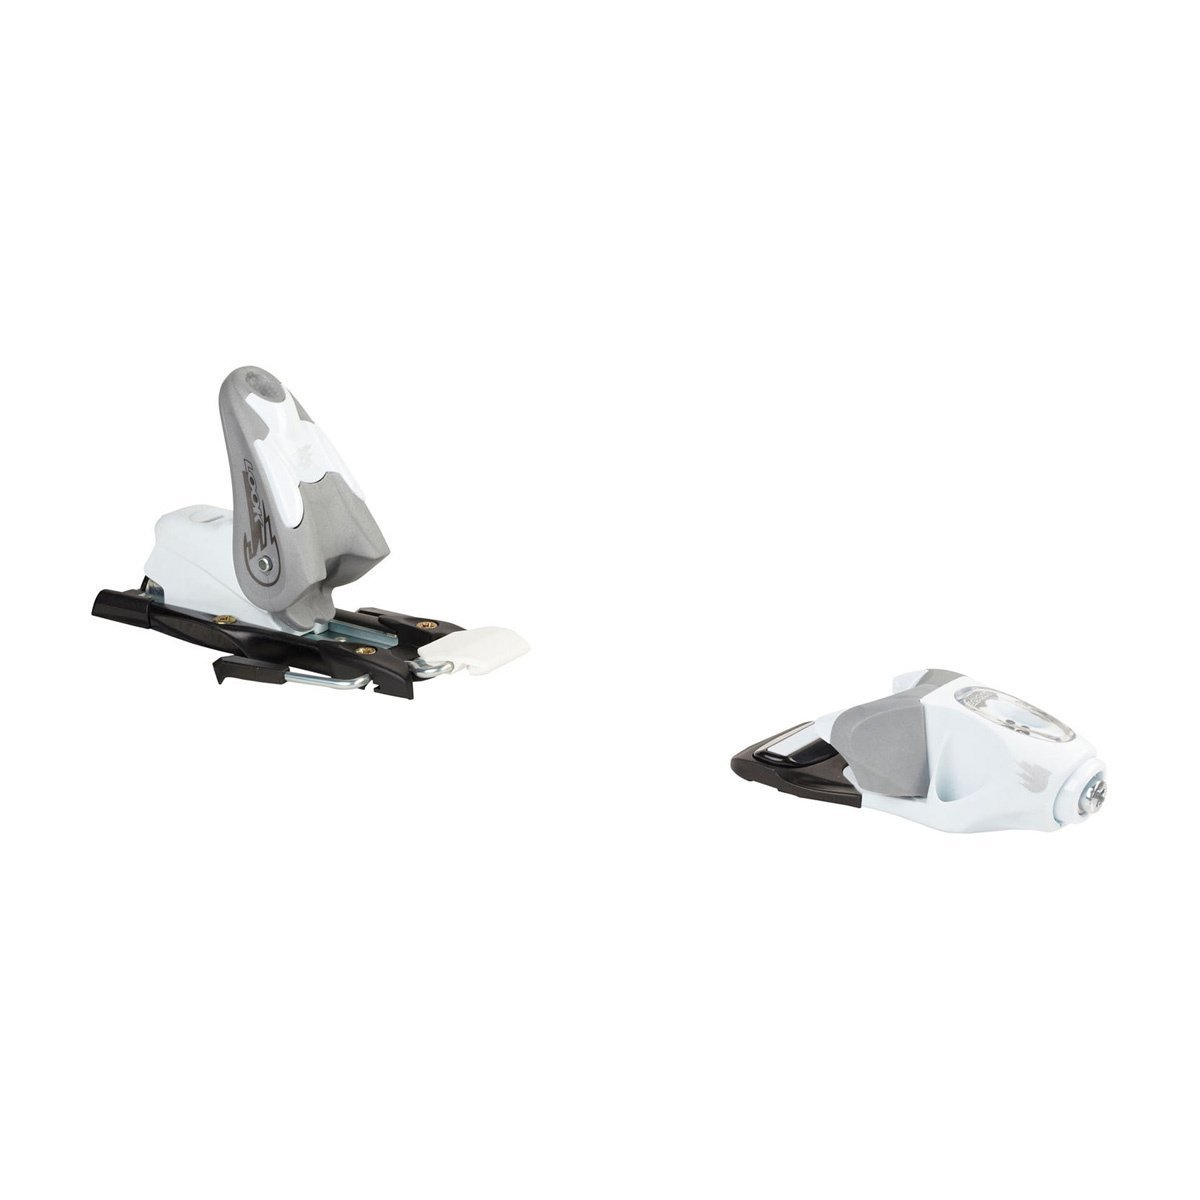 Look Team 2 RL Ski Bindings One Size White by Look